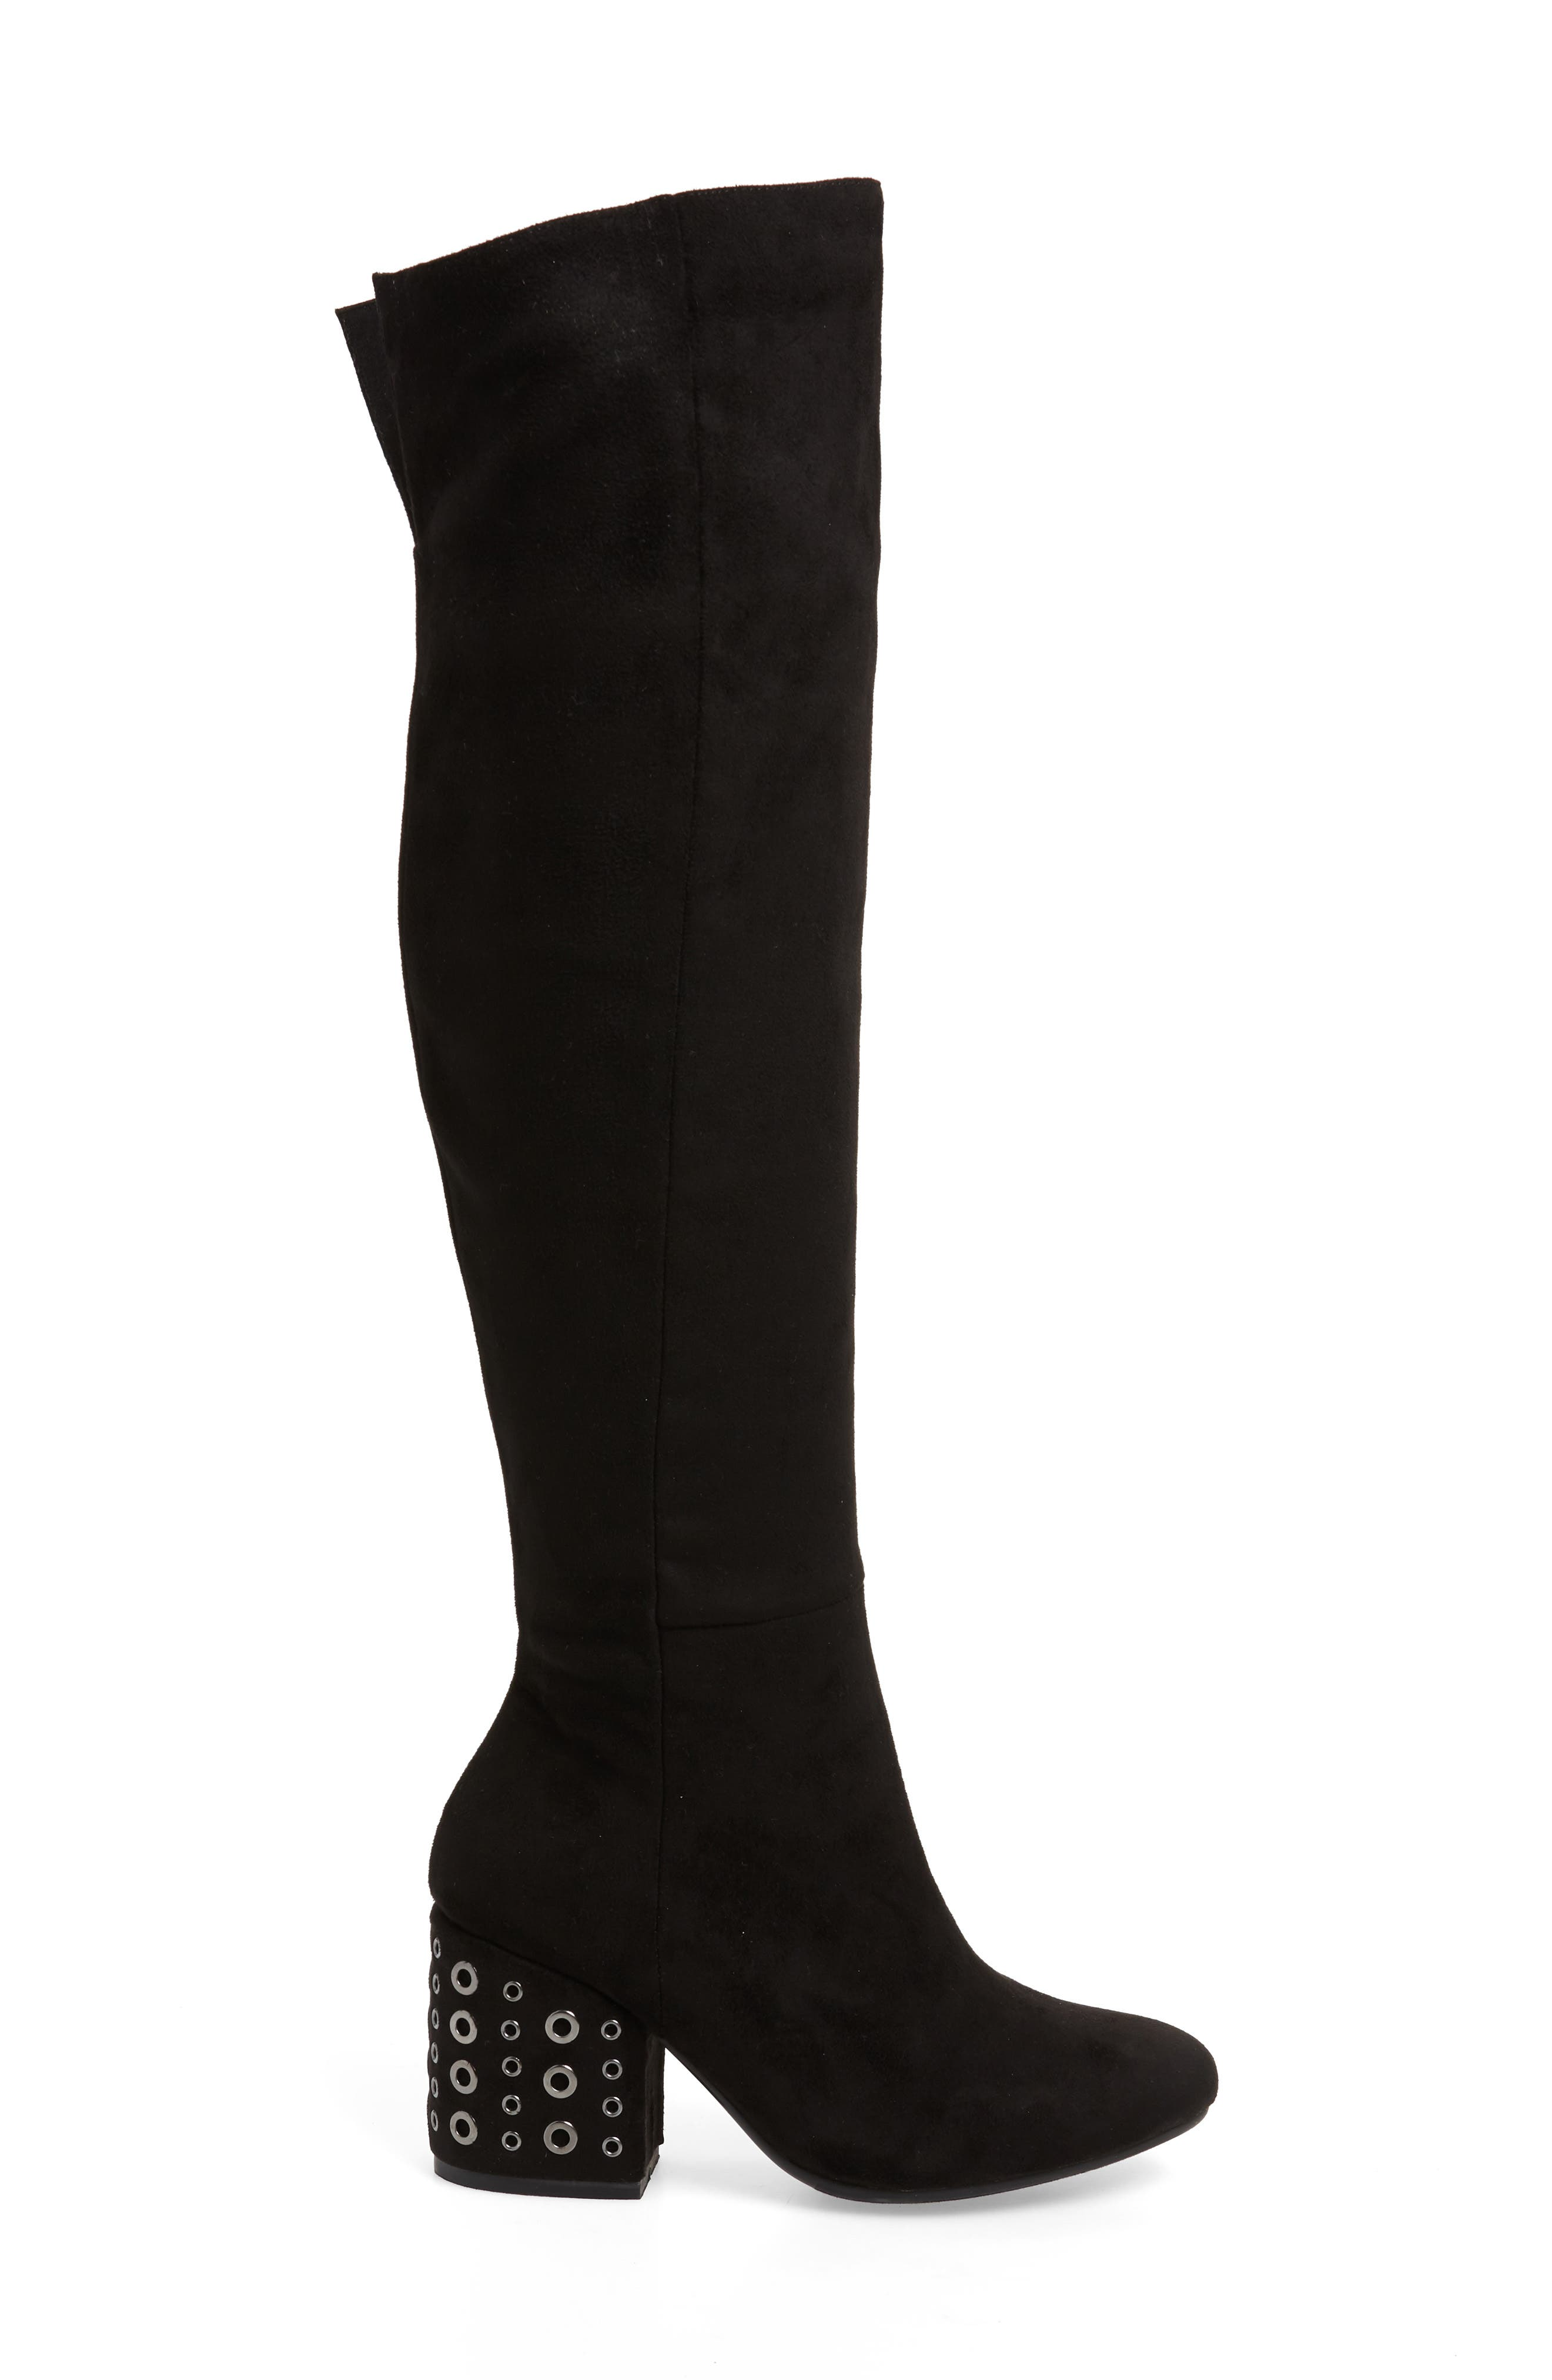 SBICCA, Ellaria Over the Knee Boot, Alternate thumbnail 3, color, BLACK FABRIC